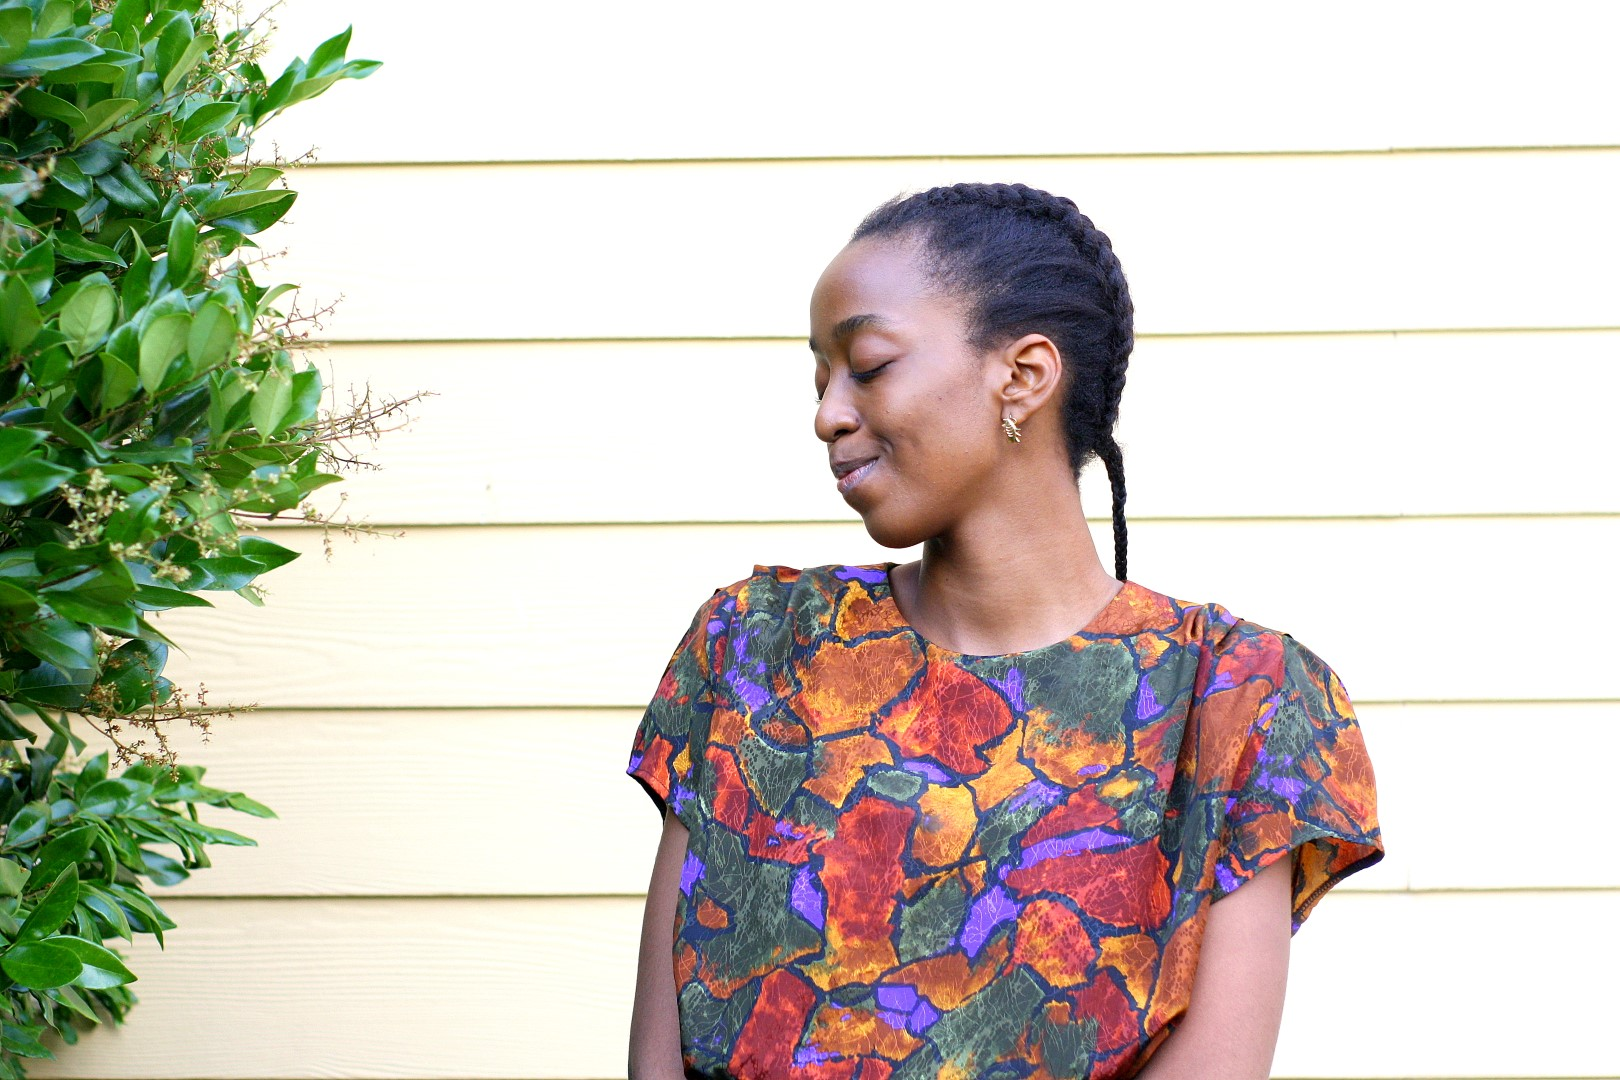 Going back to the basics - Nigerian fashion blogger Cassie Daves in a profile shot wearing a bright coloured prints top